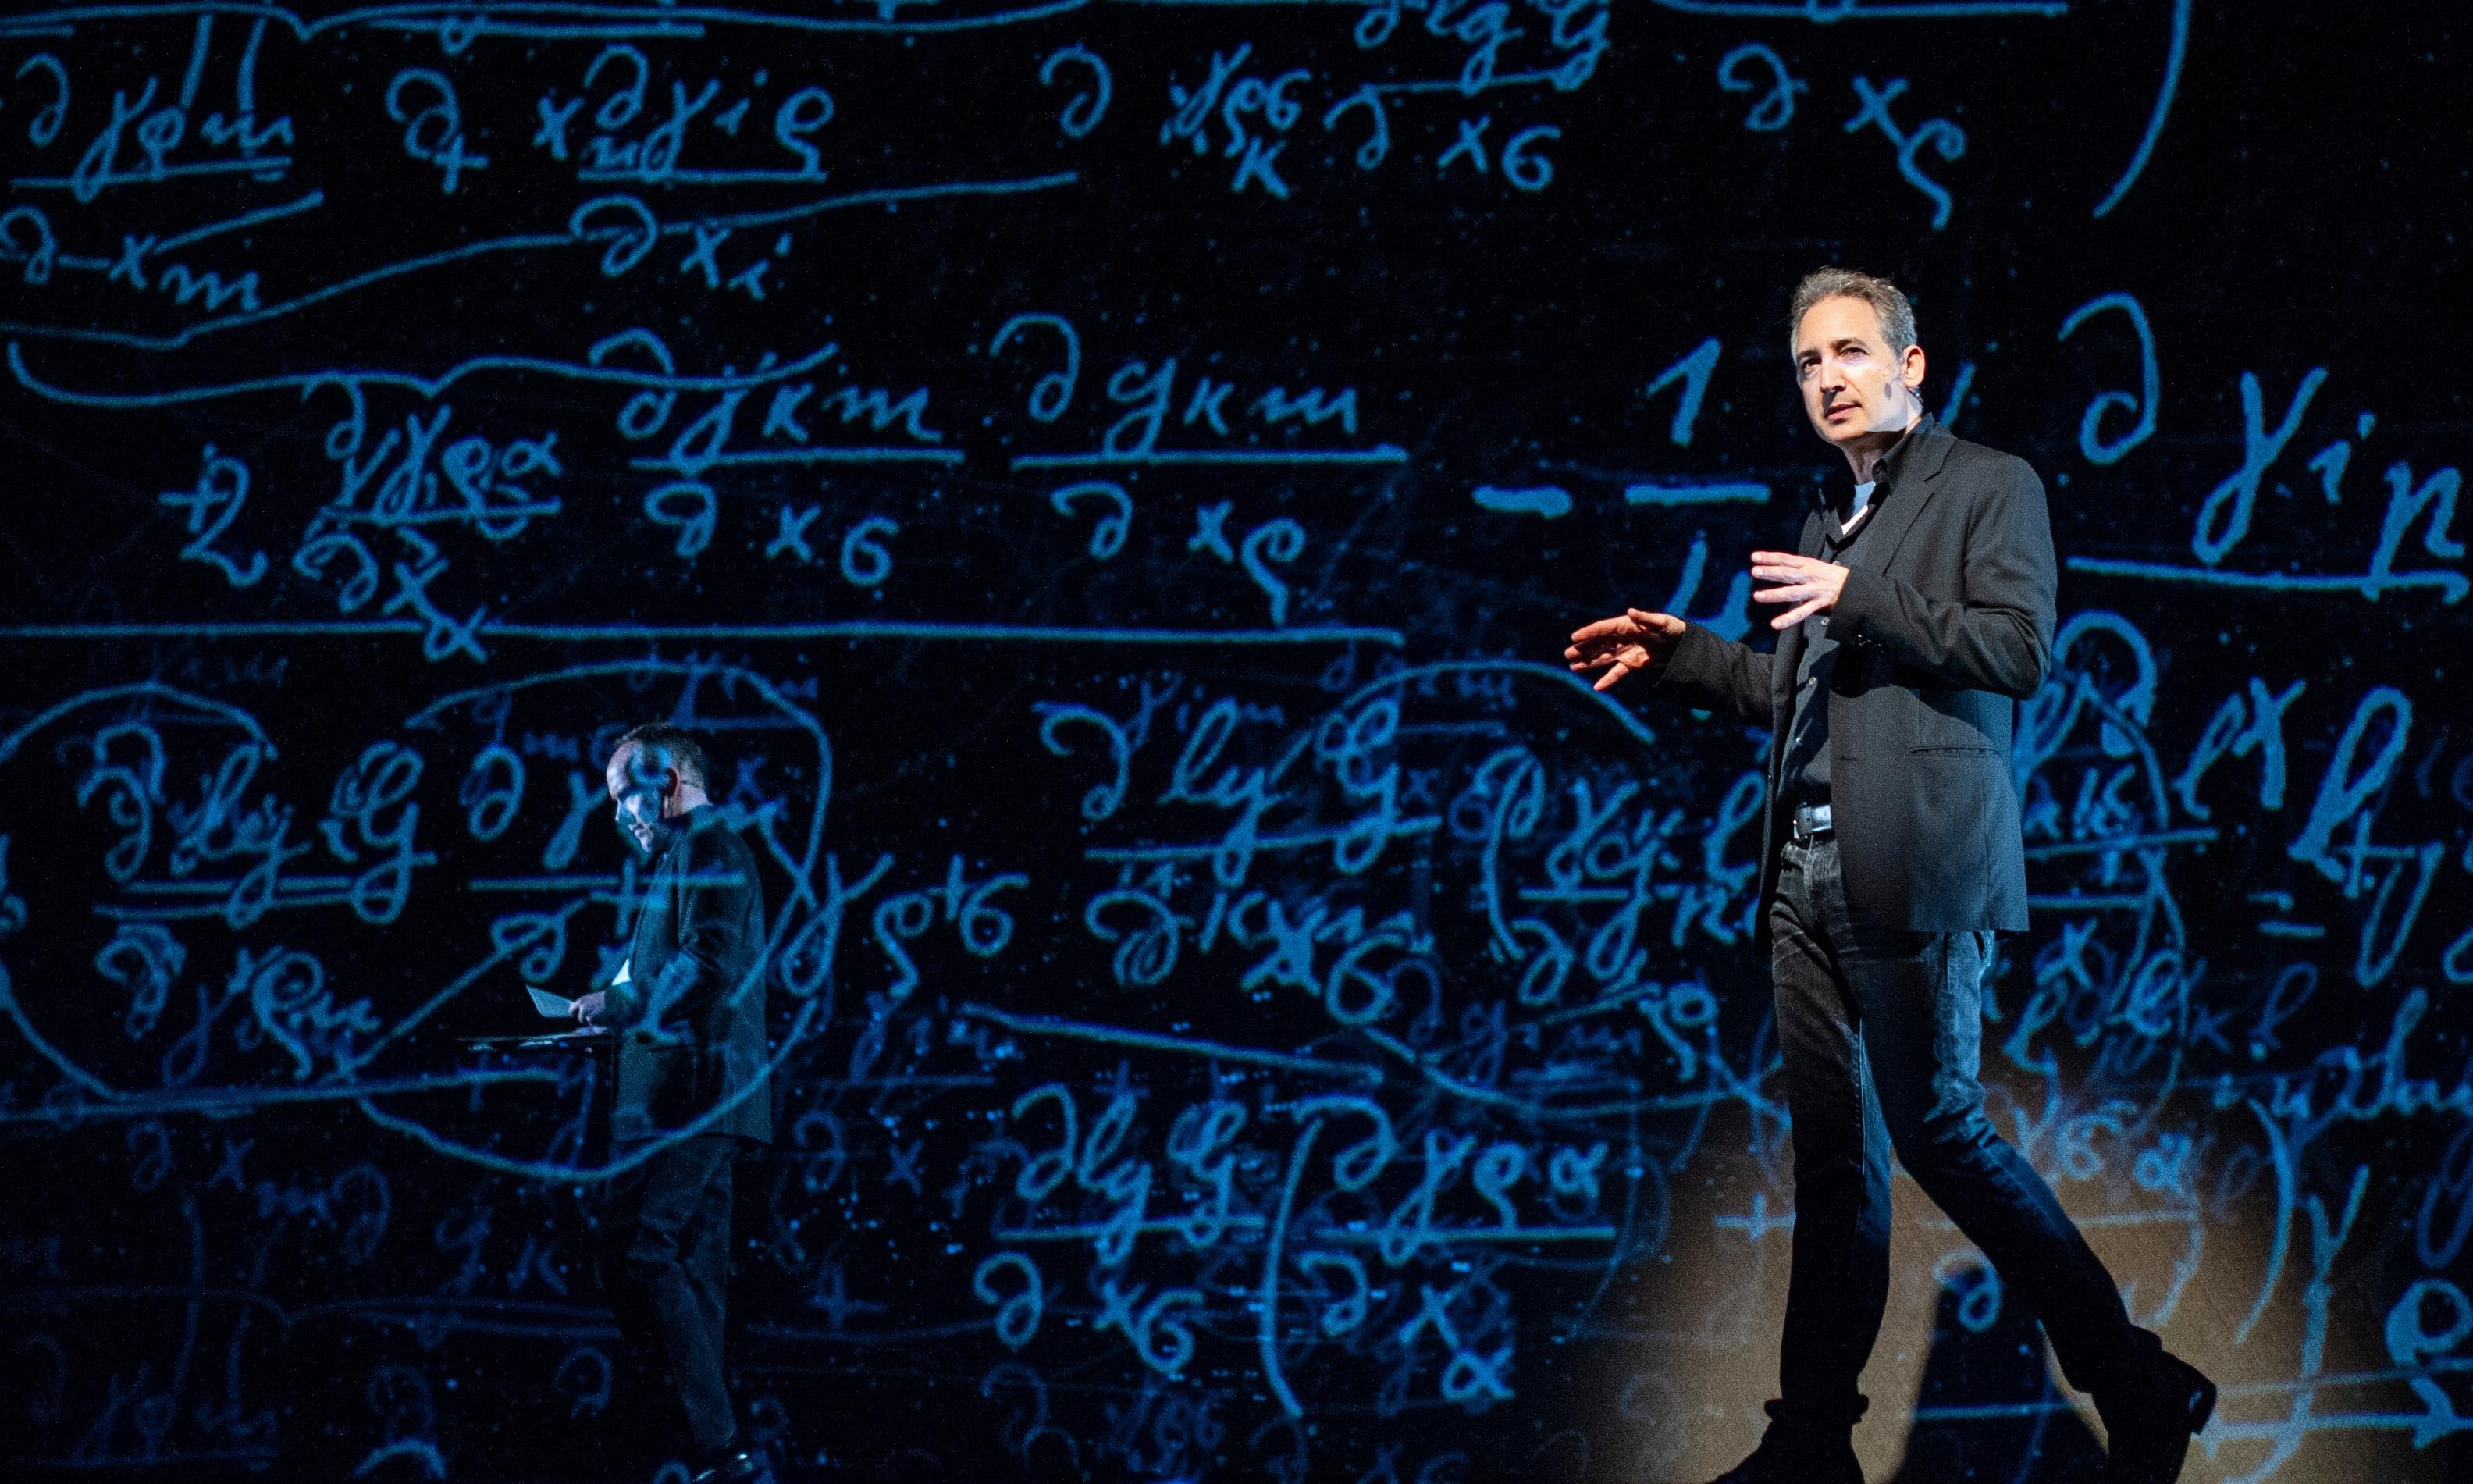 Physicist Brian Greene: 'Factual information is not the right yardstick for religion'